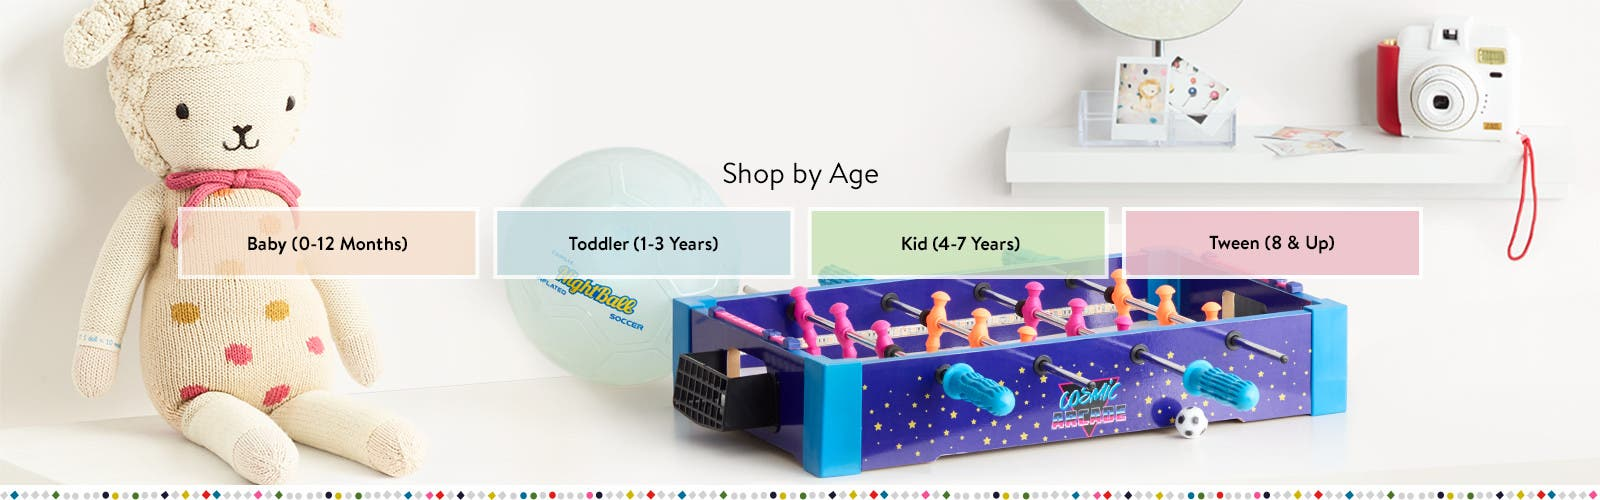 Shop kids' toys by age.